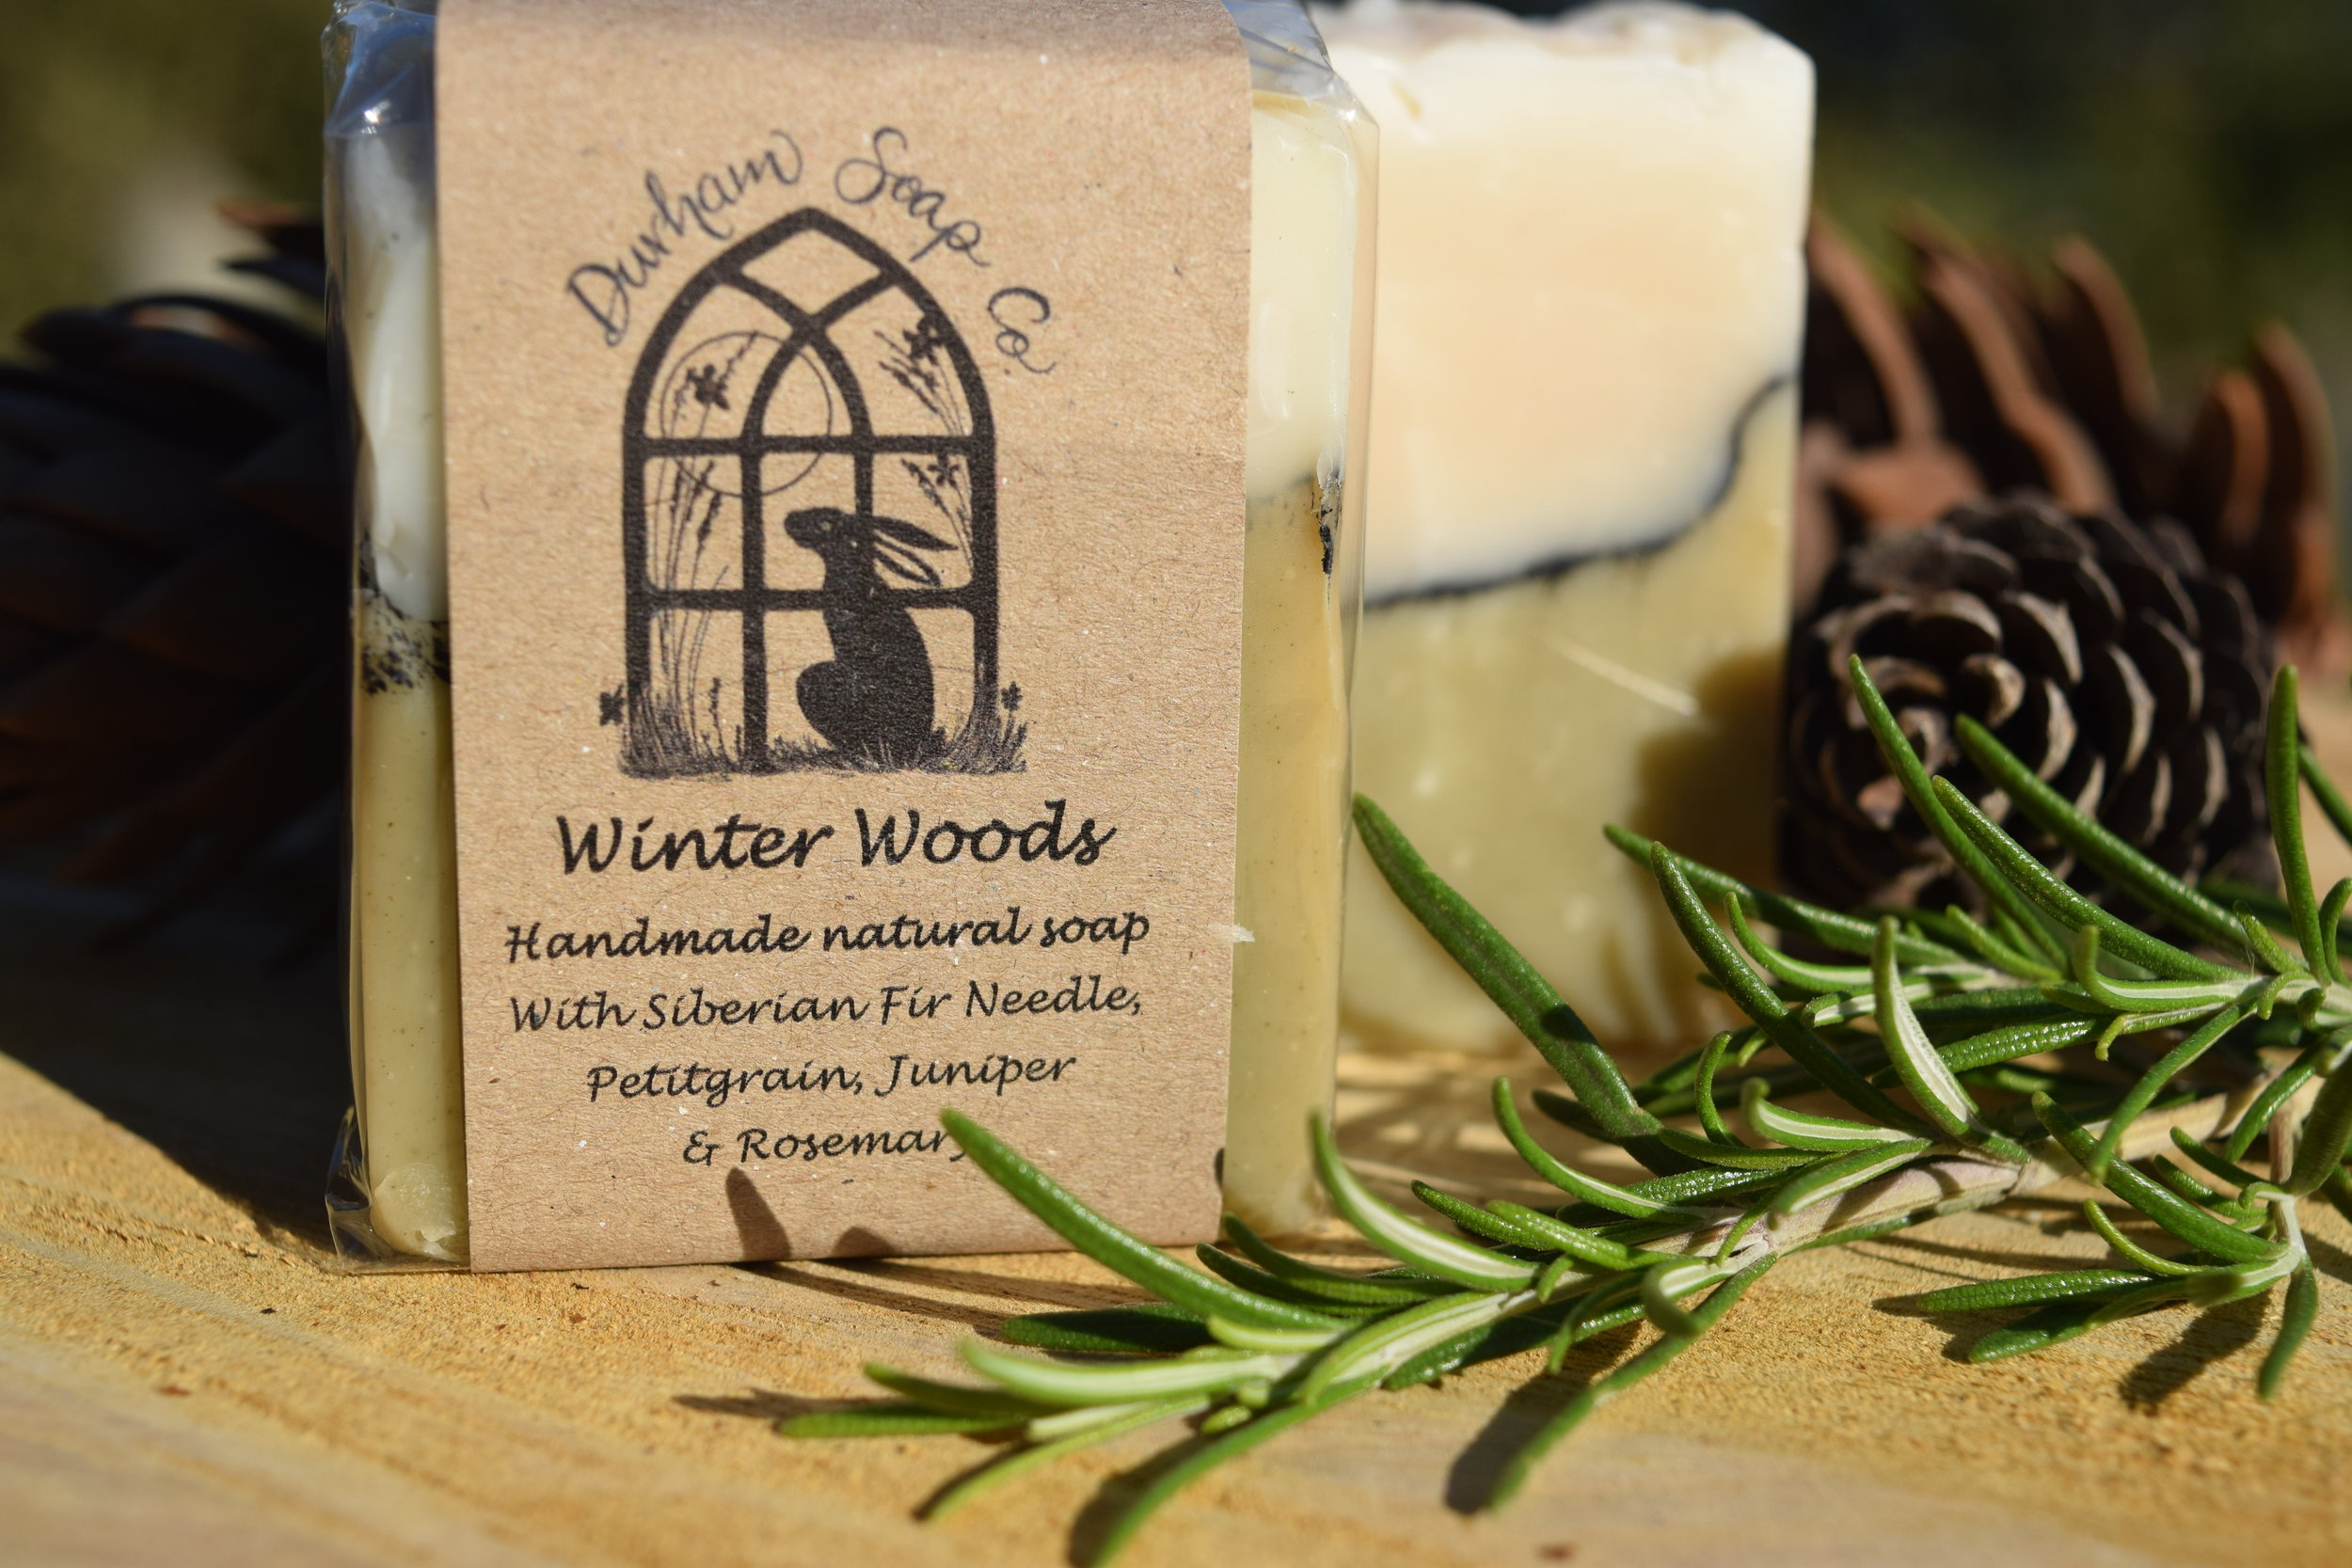 Winter Woods - Natural soap, handmade with our blend of pure plant oils, enriched with moisturising shea butter, cocoa butter and castor oil for a rich and creamy lather. Our soap is fragranced with a blend of fir needle, juniper, rosemary, petitgrain (orange leaf) and may chang essential oils to give a wonderful winter woodland scent.Ingredients: Olive oil, coconut oil, sunflower oil, shea butter, cocoa butter, water, castor oil, fir needle oil, orange leaf oil, juniper fruit oil, spirulina powder, charcoal powder, rosemary oil, may chang oil, Vitamin E, citral*, geraniol*, limonene*, linalool*, * = occurs naturally in essential oils.Net weight: 100 g